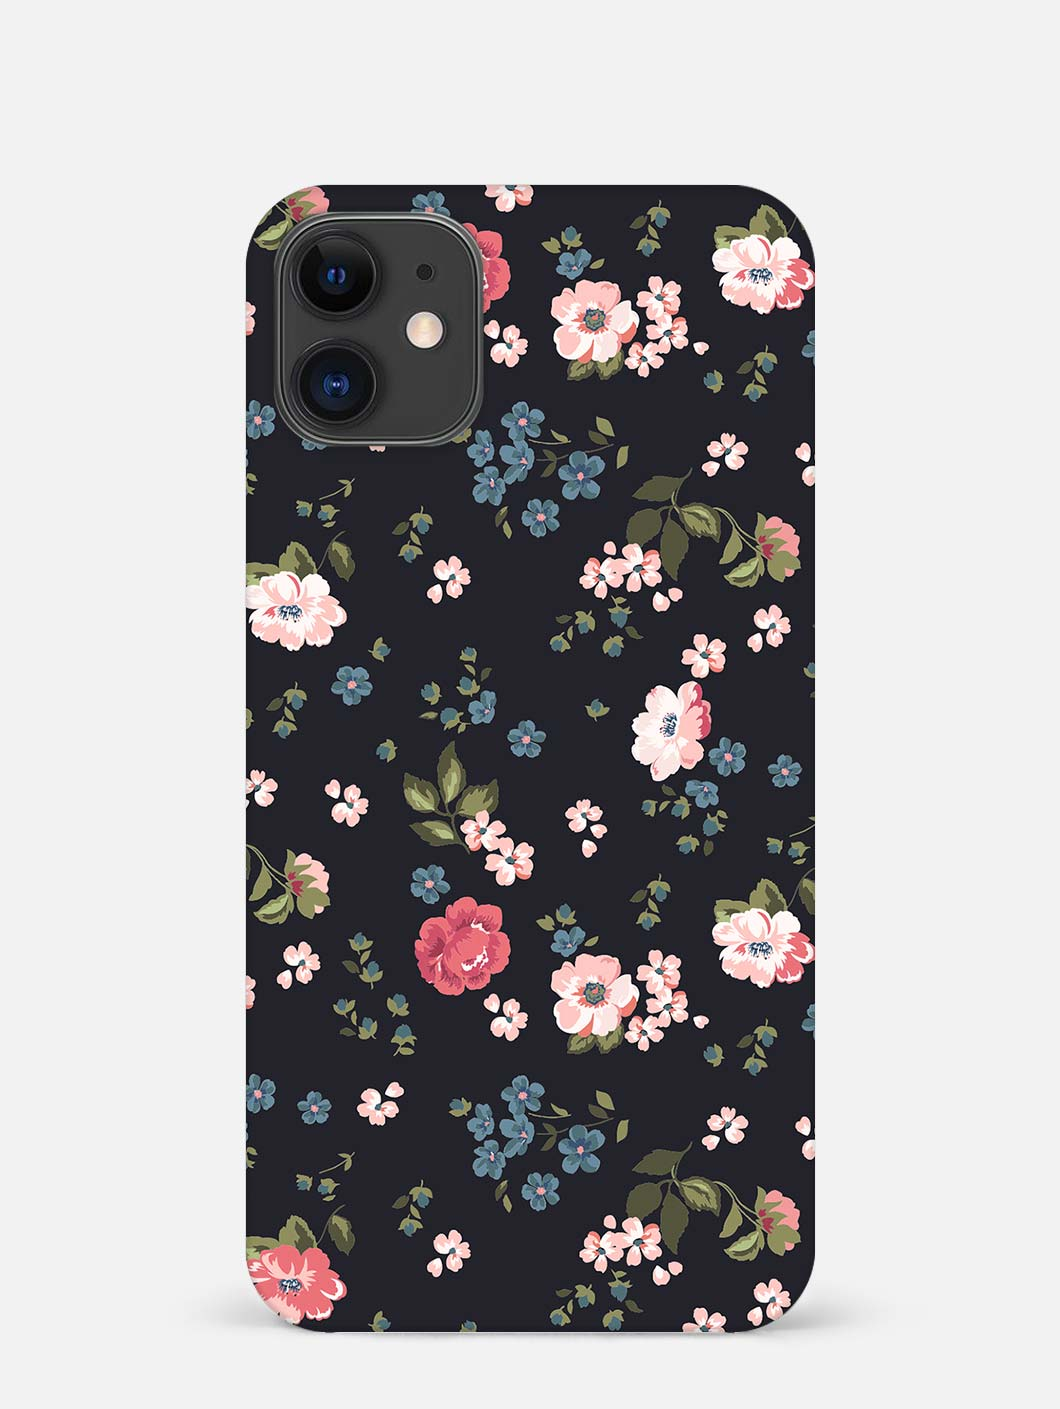 Floral Print iPhone 12 Mini Mobile Cover